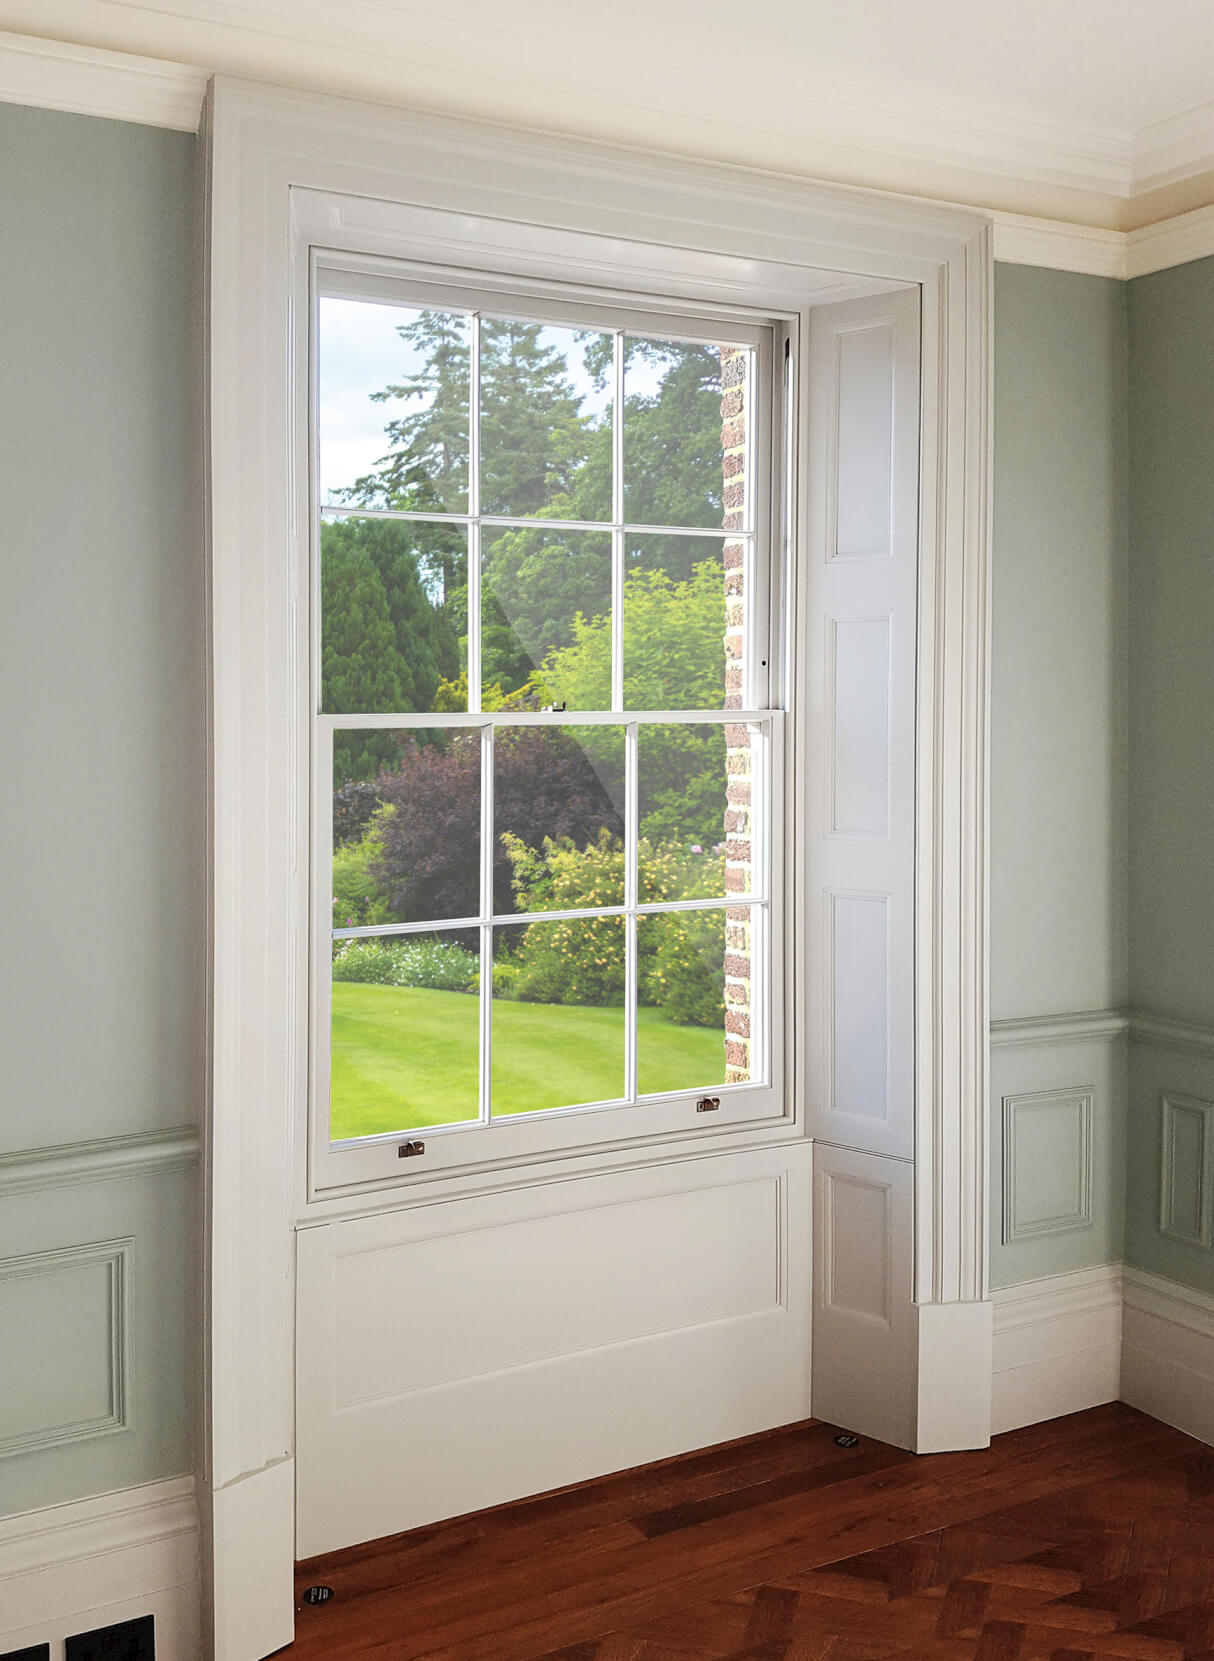 """I had 3 Spiral Balanced Sash windows fitted by Hardwick Windows, the quality of the product is superb"" - Diane Kettle"